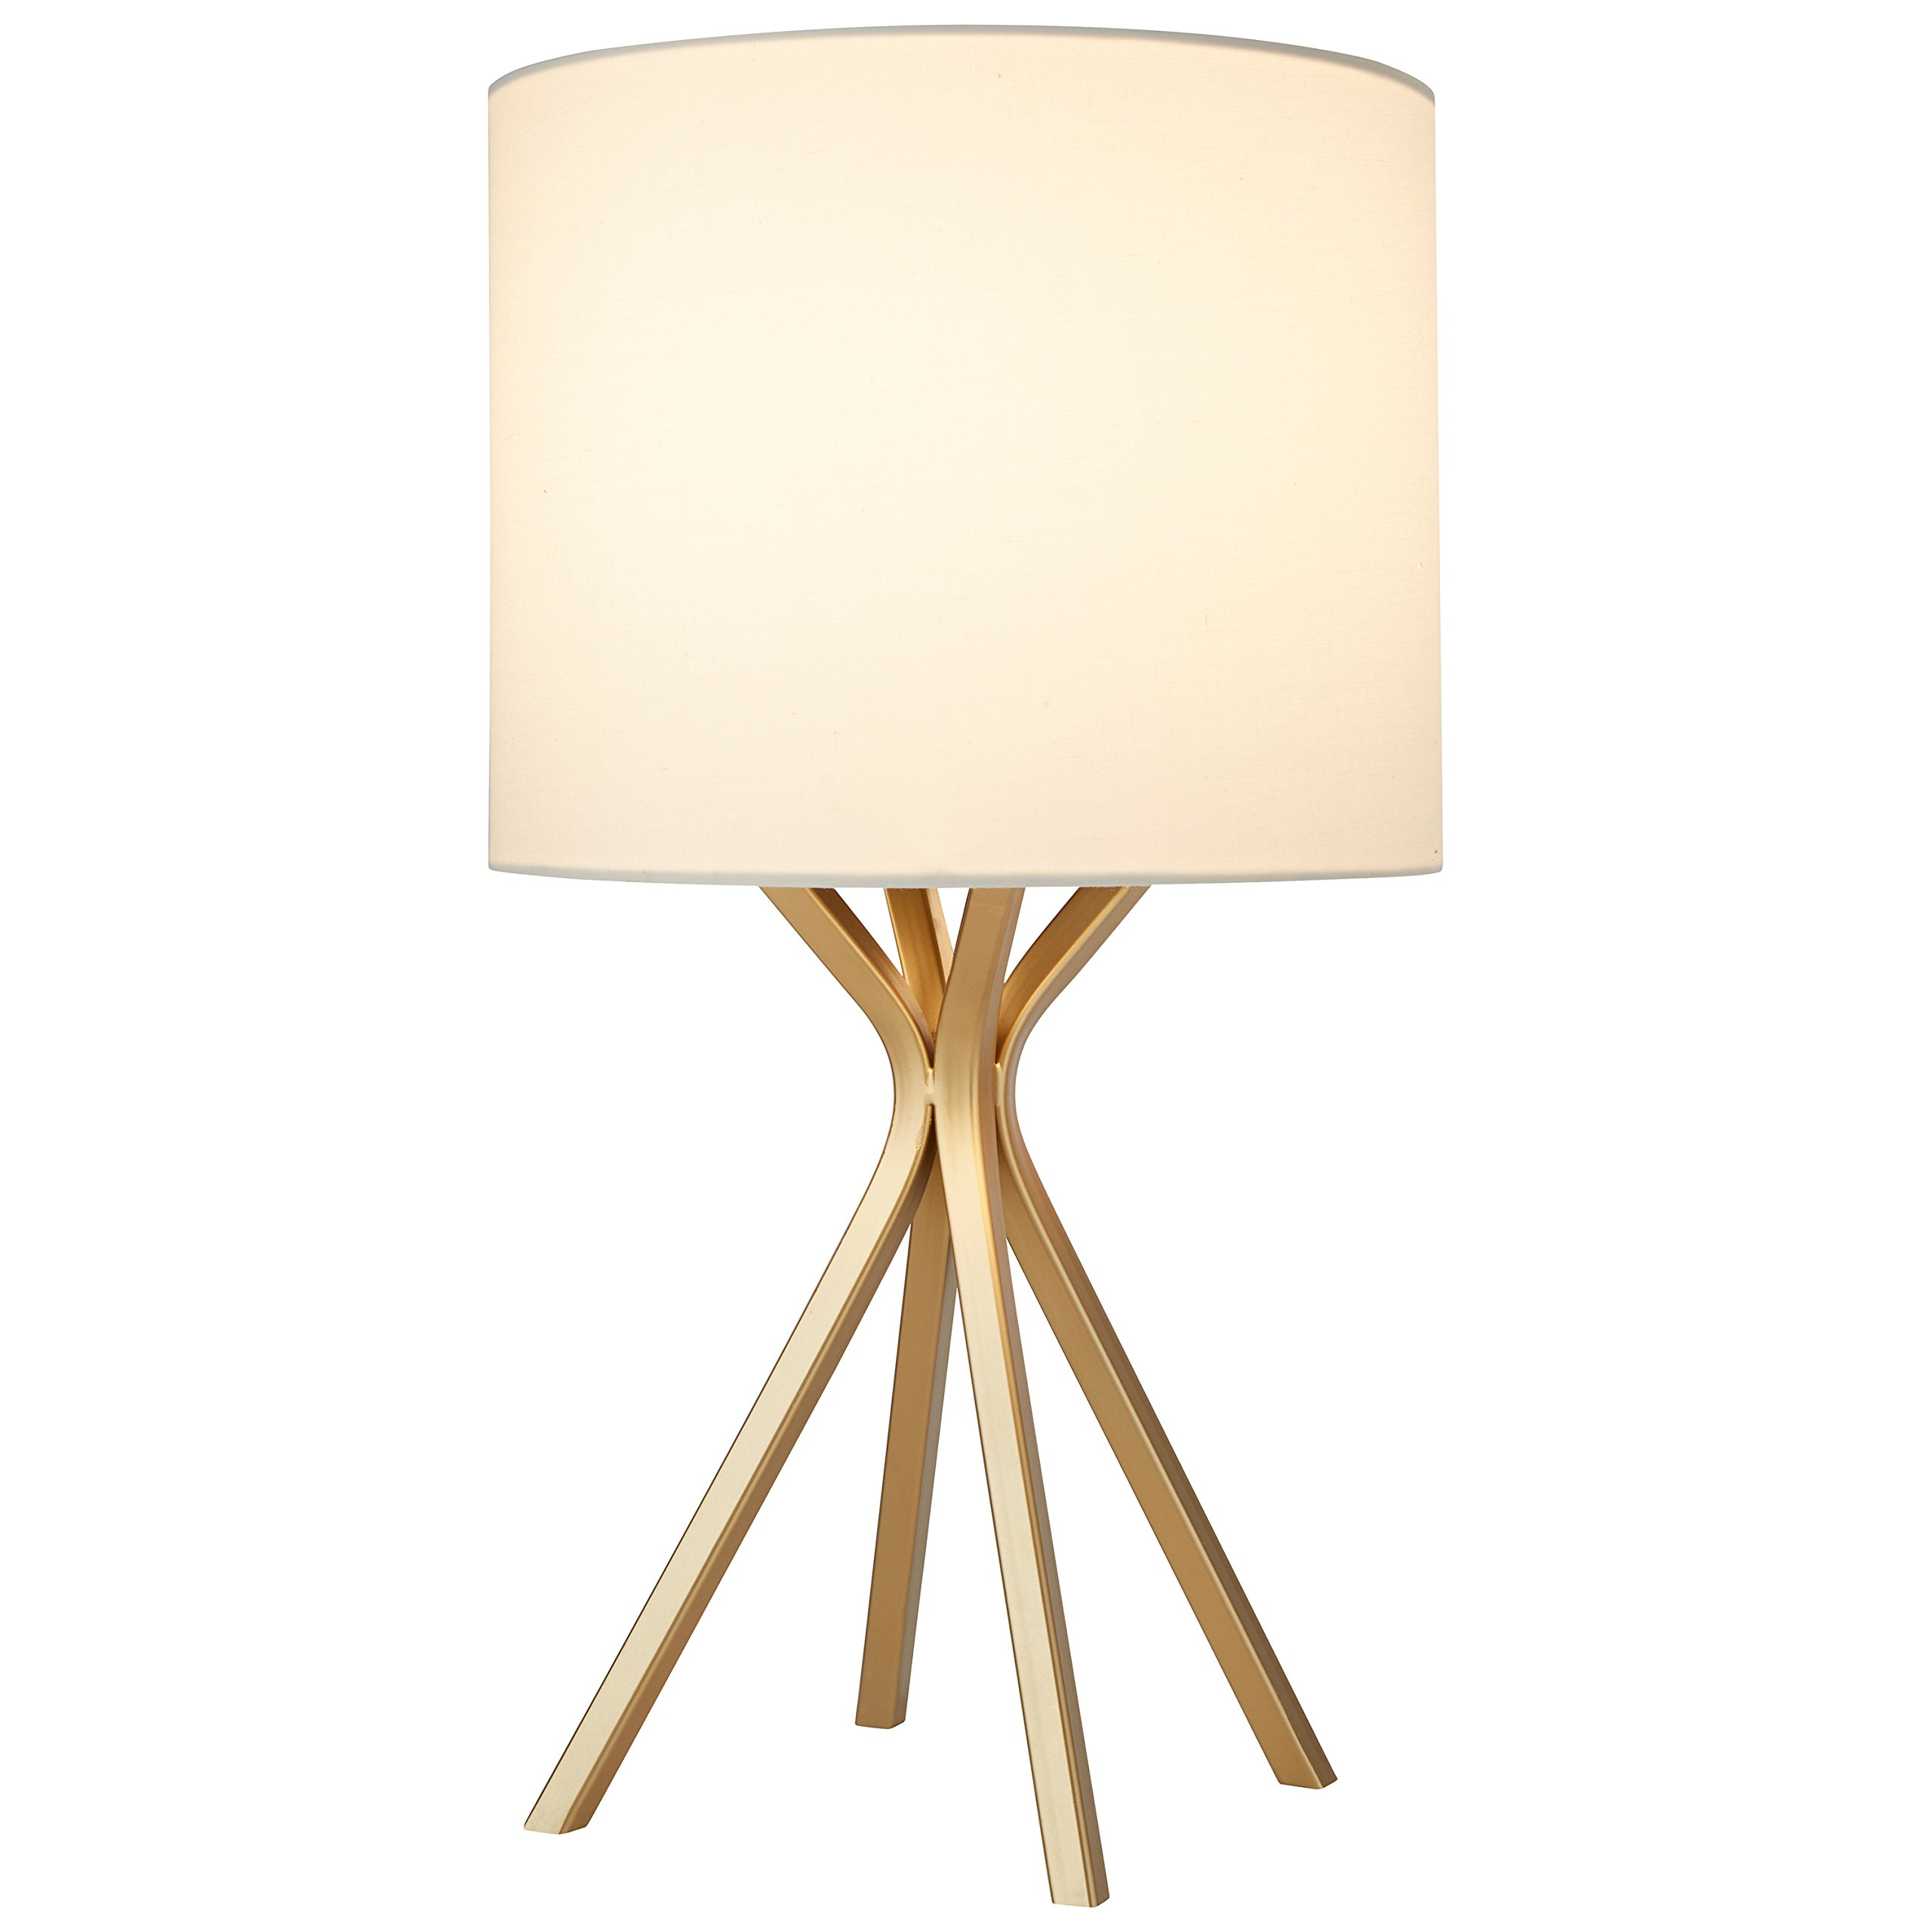 Rivet Gold Table Lamp, 18''H, with Bulb, with Drum Linen Shade